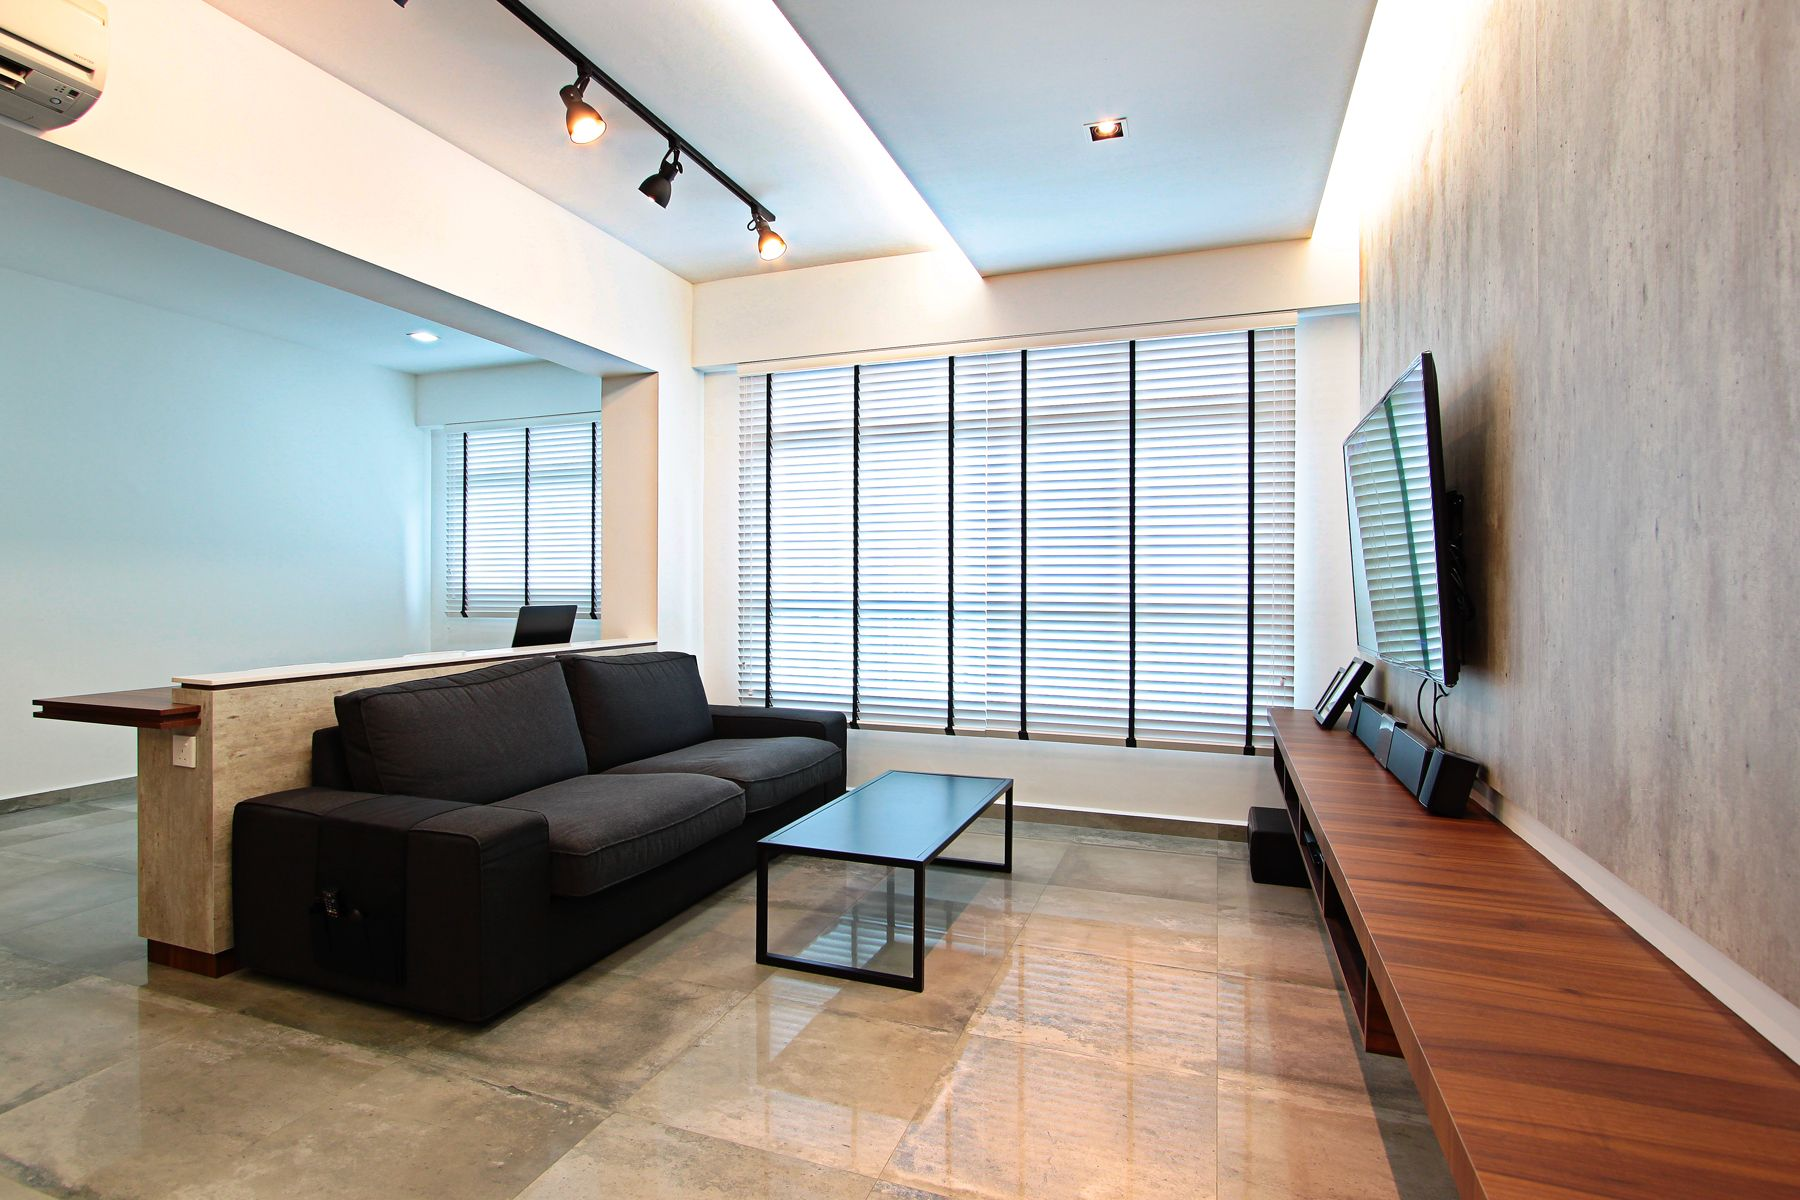 hdb standard flat love the overall clean interior with the most appeasing venetian blinds extra living room space with 1 room walls hacked down